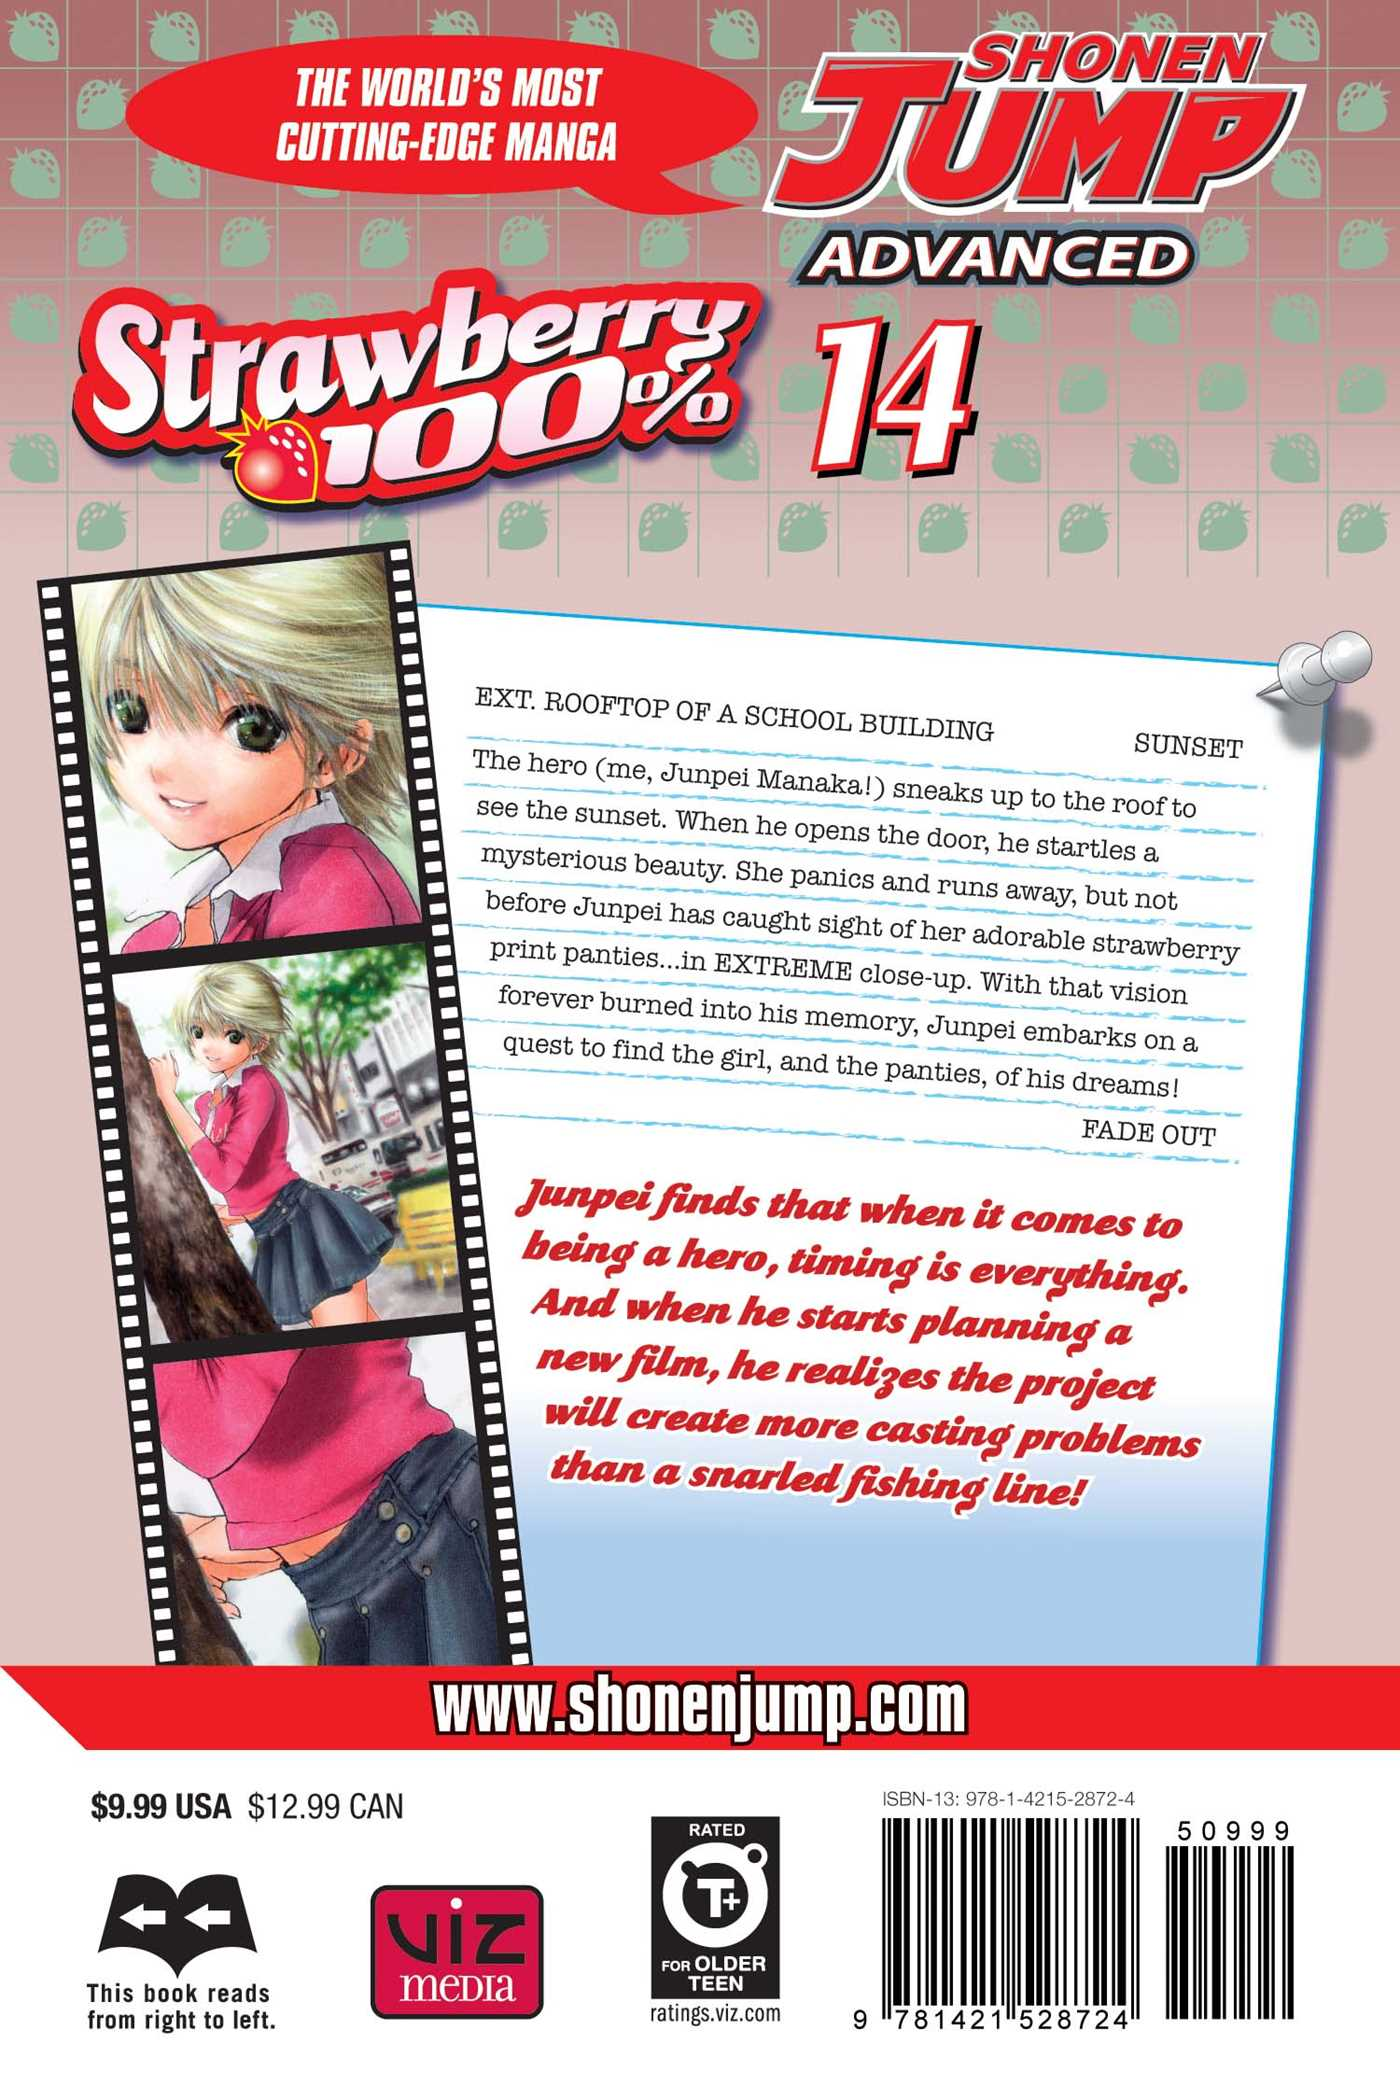 Strawberry-100-vol-14-9781421528724_hr-back